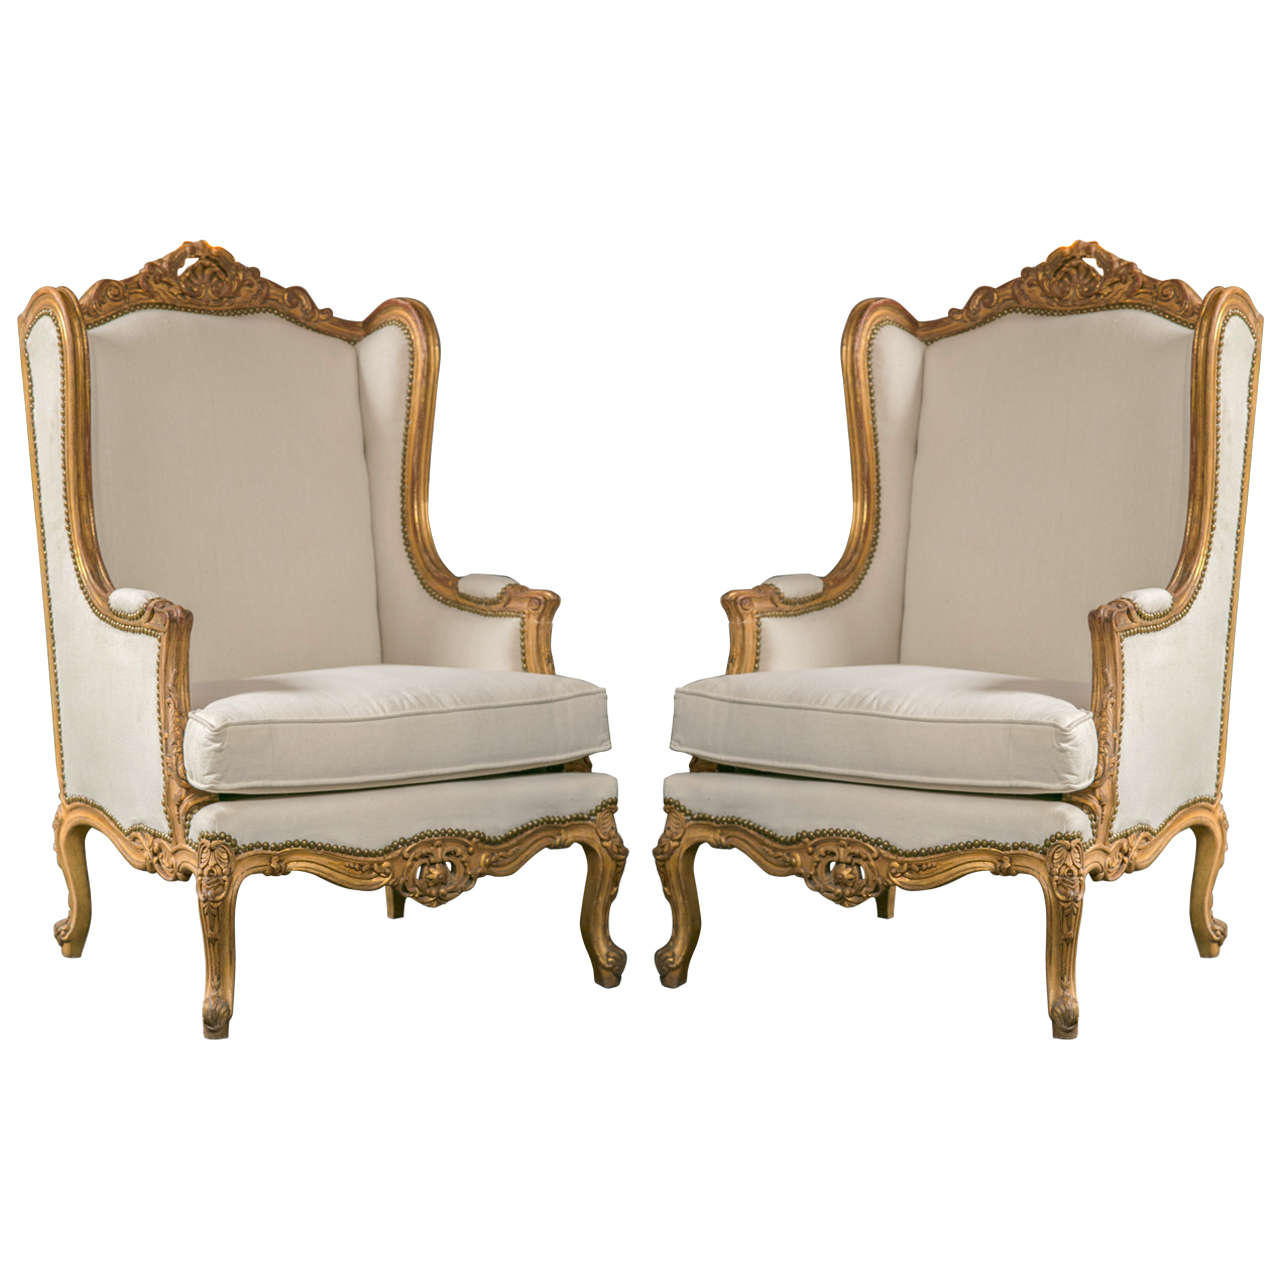 french bergere chair party tables and chairs for rent pair of louis xv style wingback at 1stdibs sale